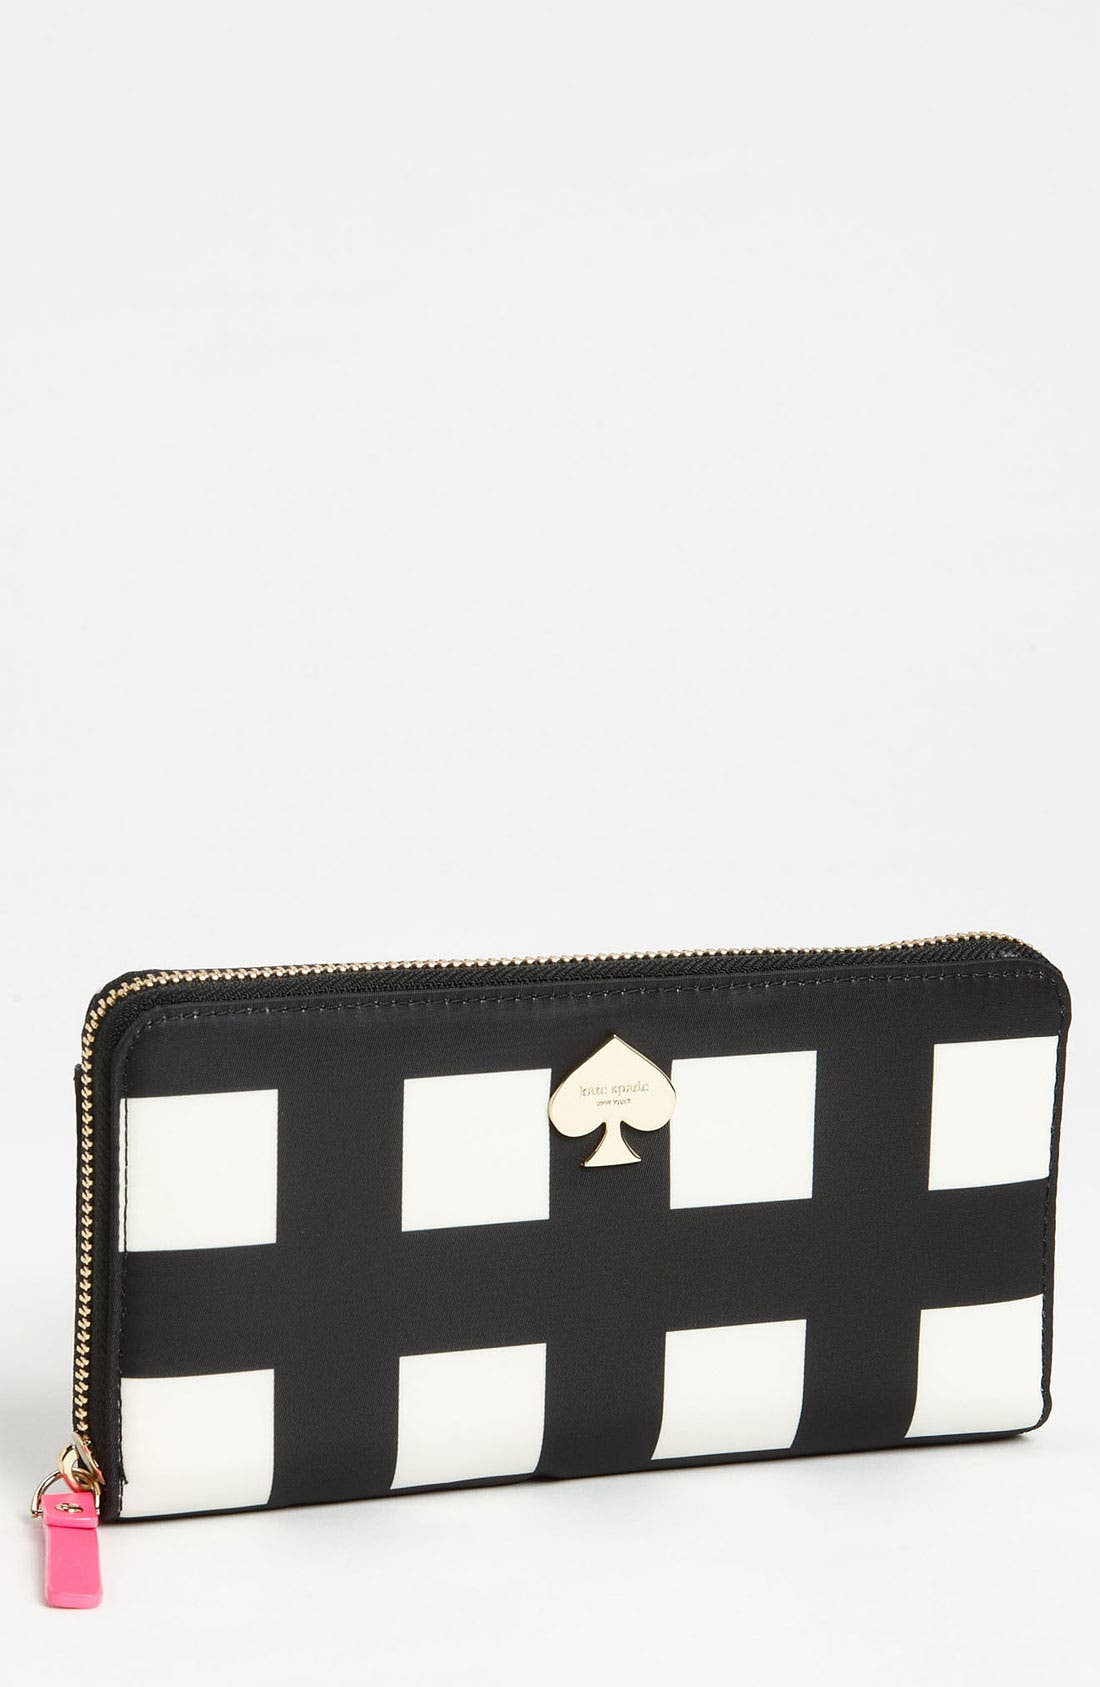 Alternate Image 1 Selected - kate spade new york 'berry street - lacey' zip around wallet